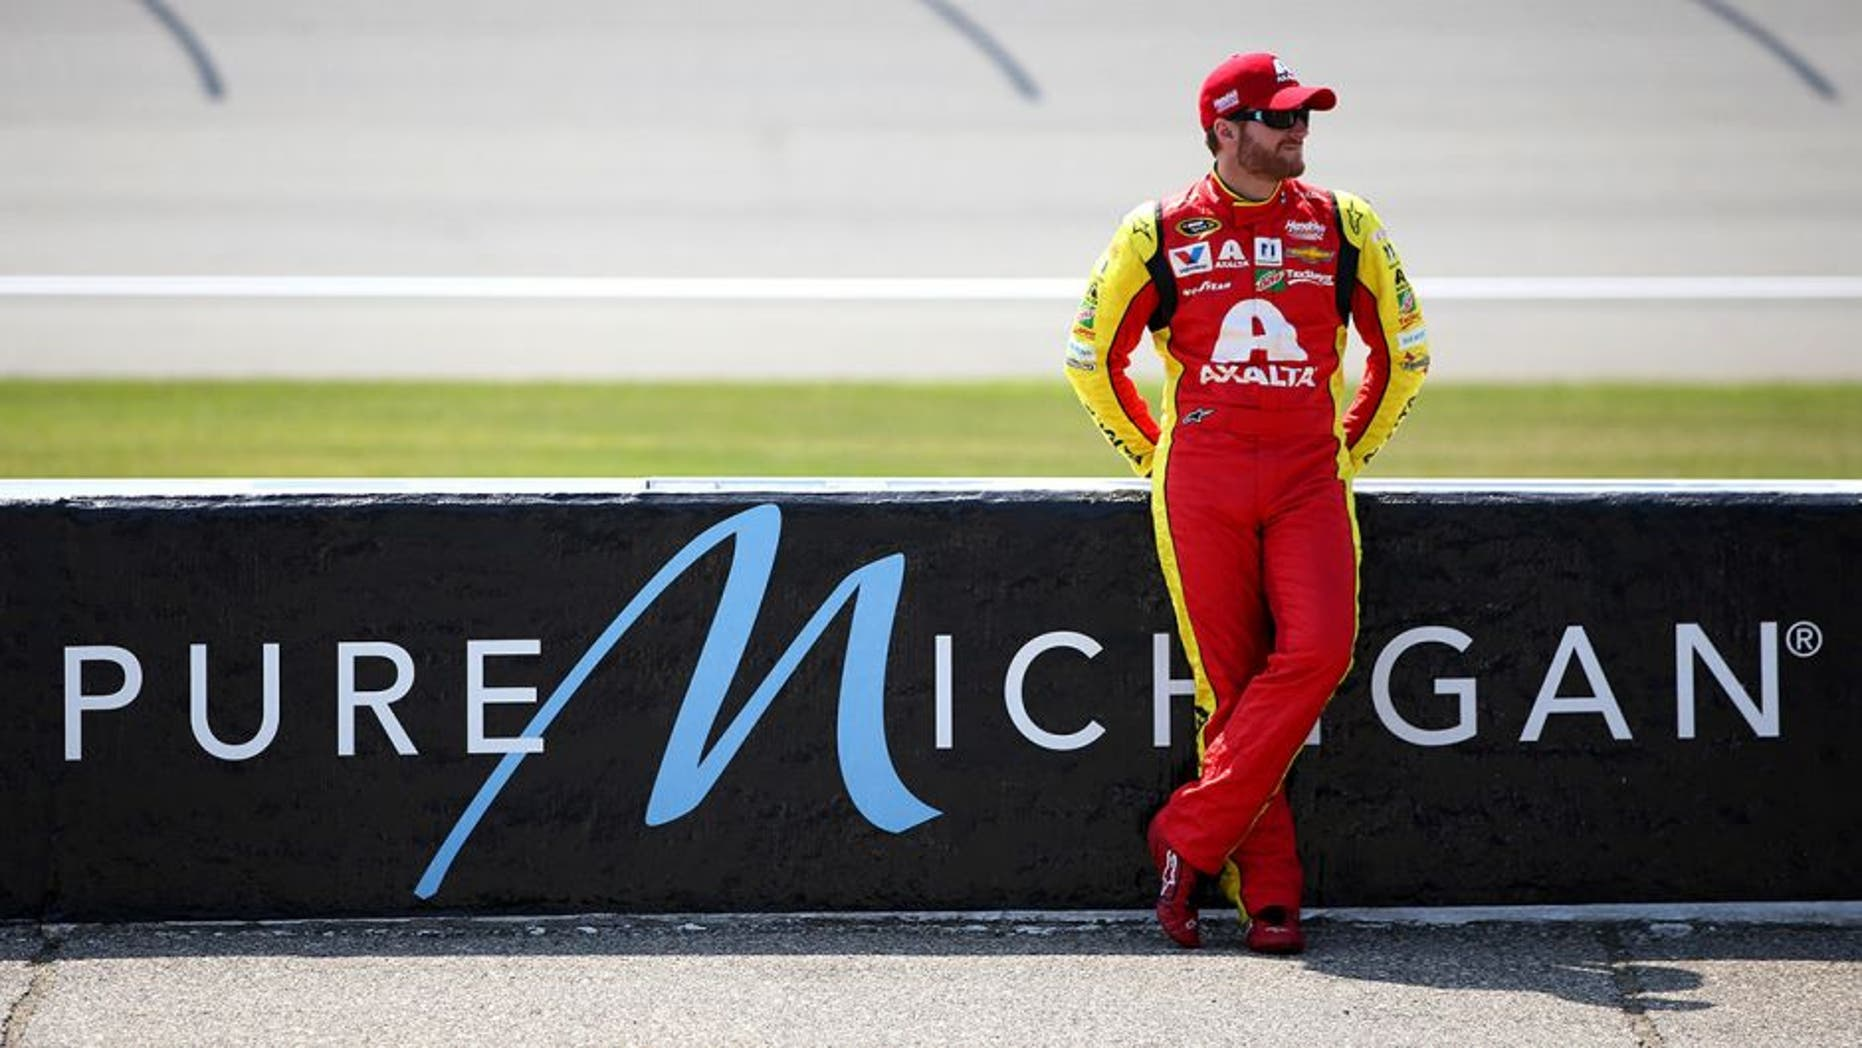 BROOKLYN, MI - JUNE 10: Dale Earnhardt Jr, driver of the #88 Axalta Chevrolet, stands on the grid during qualifying for the NASCAR Sprint Cup Series FireKeepers Casino 400 at Michigan International Speedway on June 10, 2016 in Brooklyn, Michigan. (Photo by Sean Gardner/NASCAR via Getty Images)